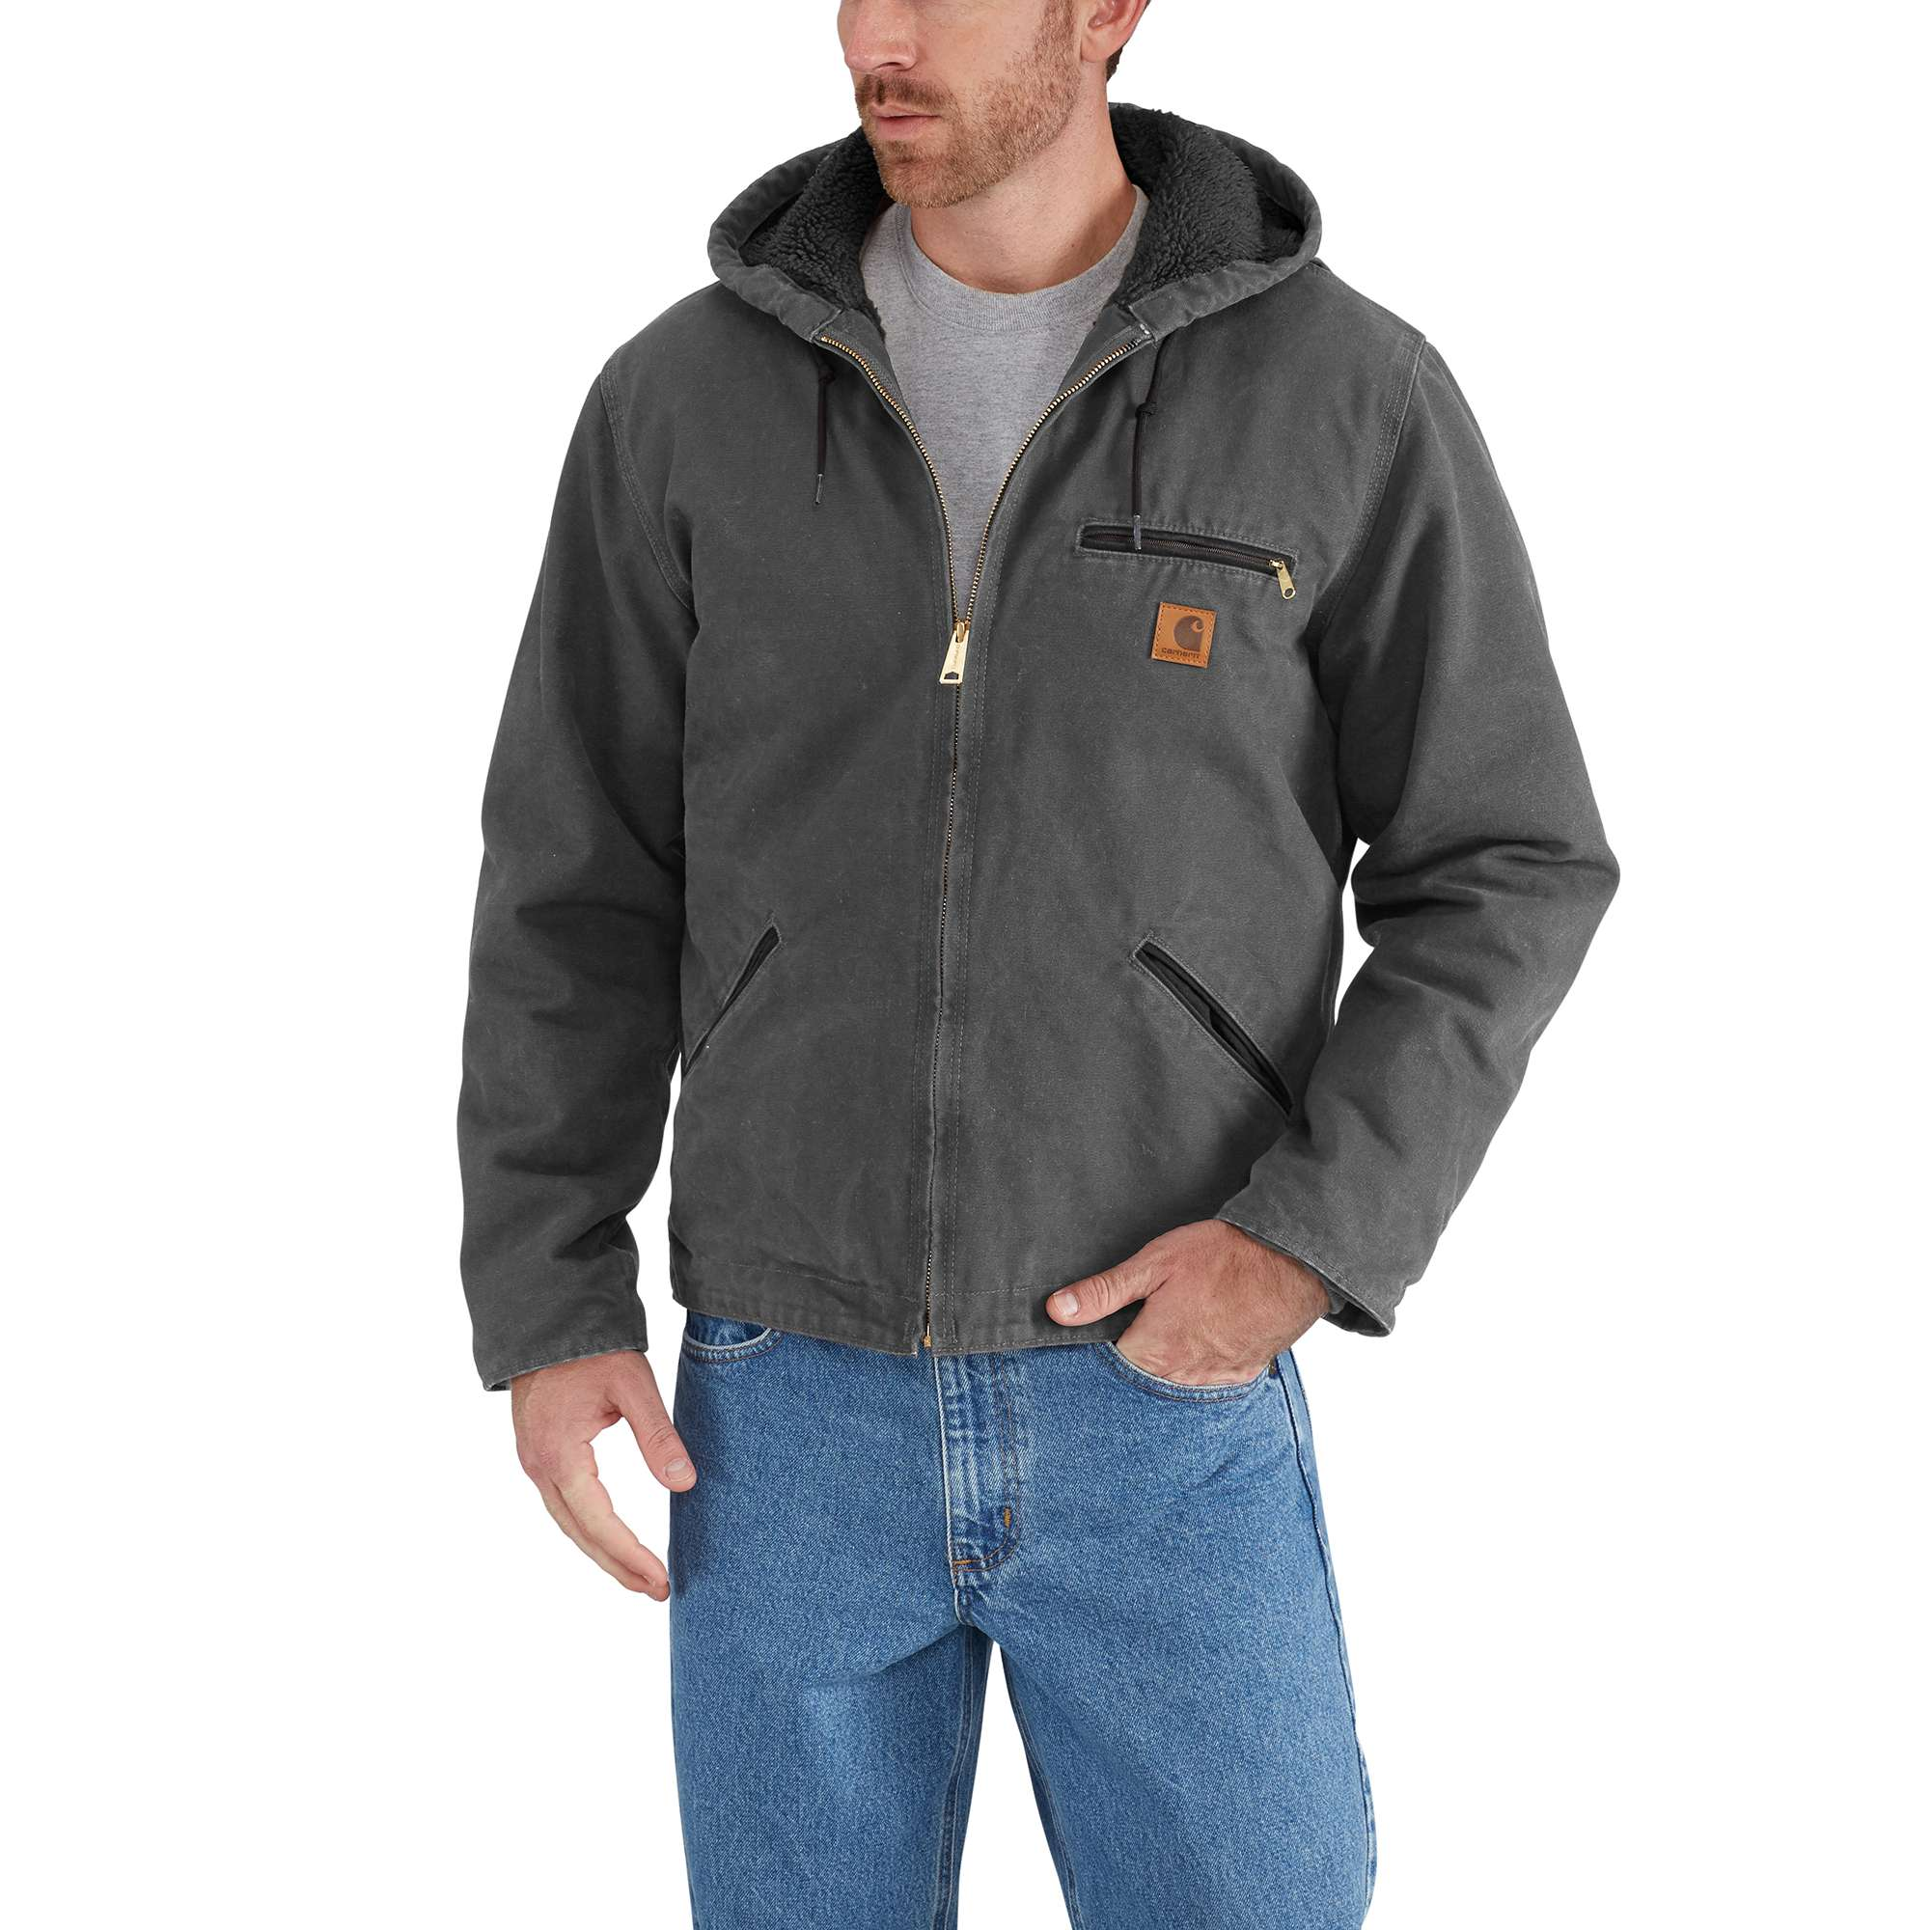 3298bb6140a Carhartt Sherpa Lined Sandstone Sierra Jacket - Mens with Free S H —  CampSaver